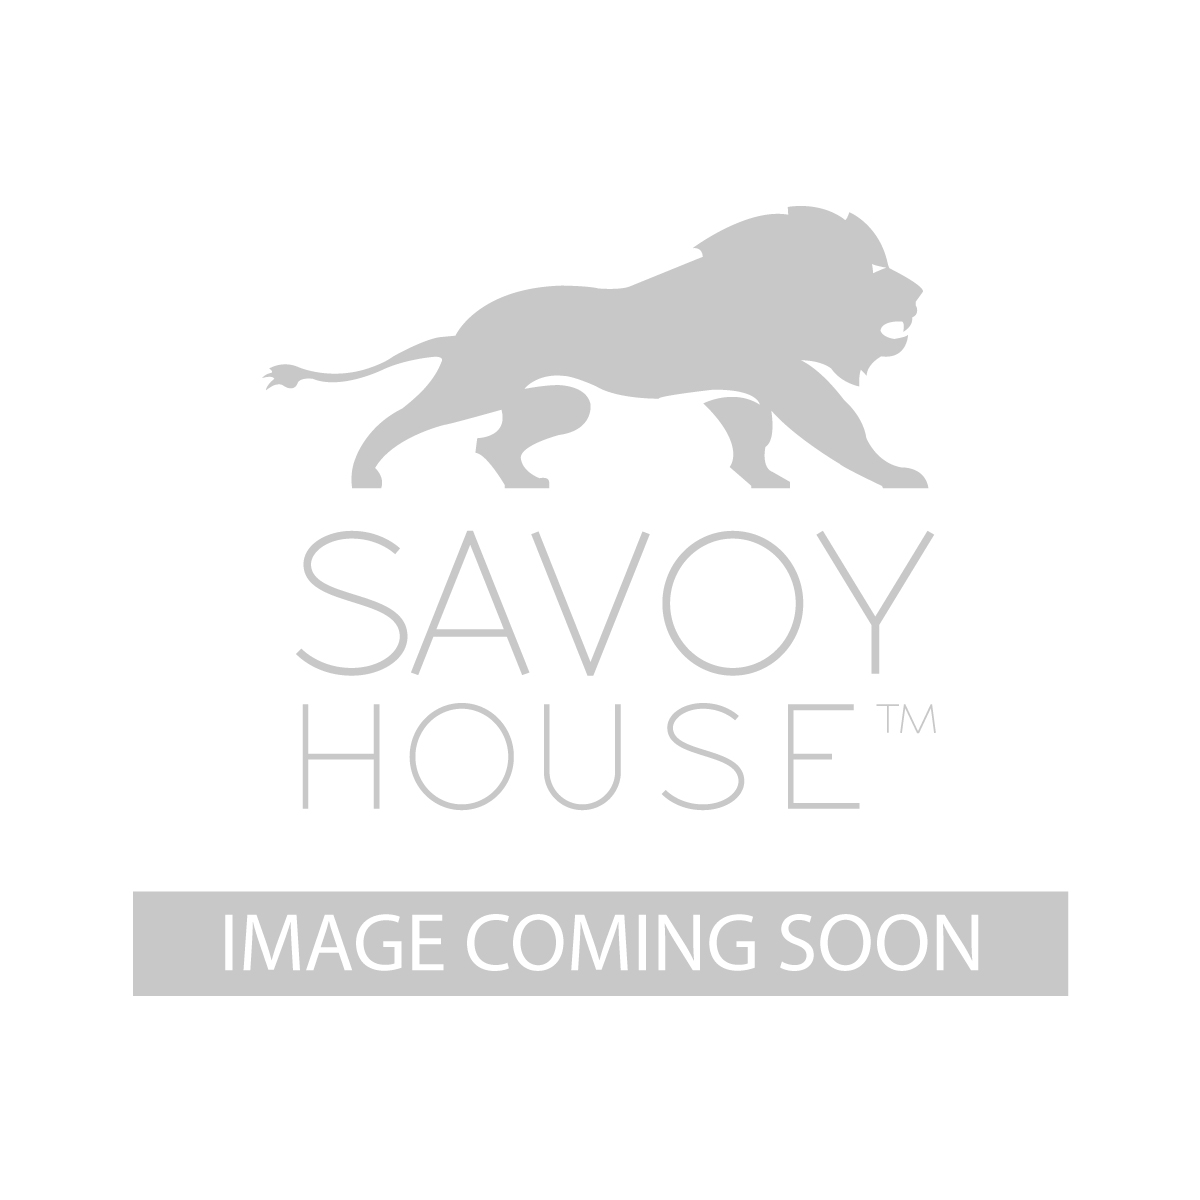 4 2001 Bz Fusion Led Task Lamp With Dimmer By Savoy House